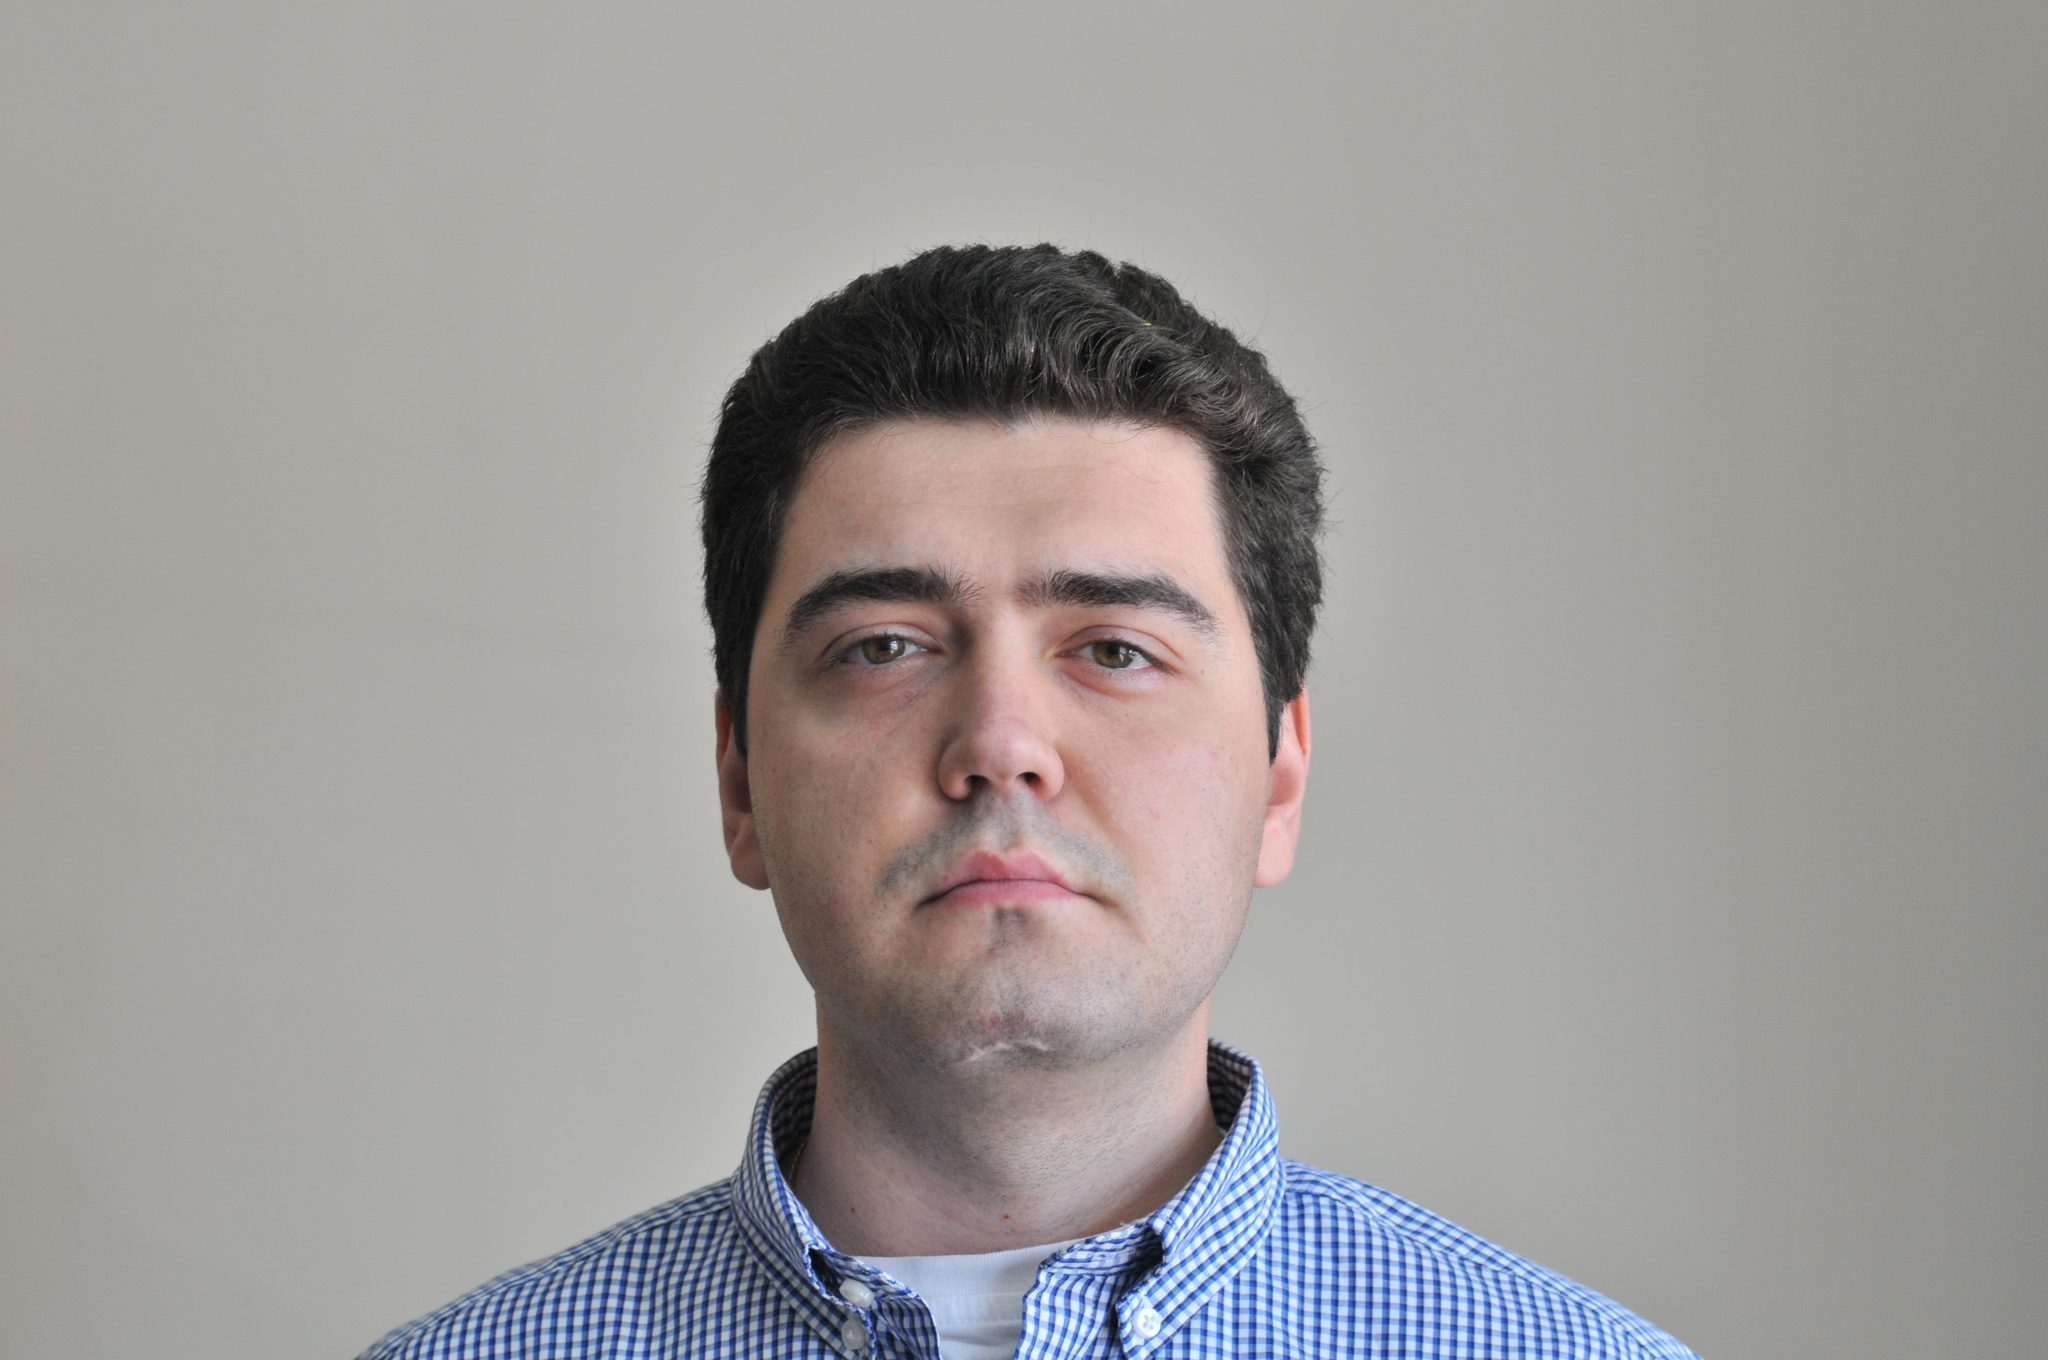 Meet CiF Lab Solutions' New Team Member Marko Parakhin